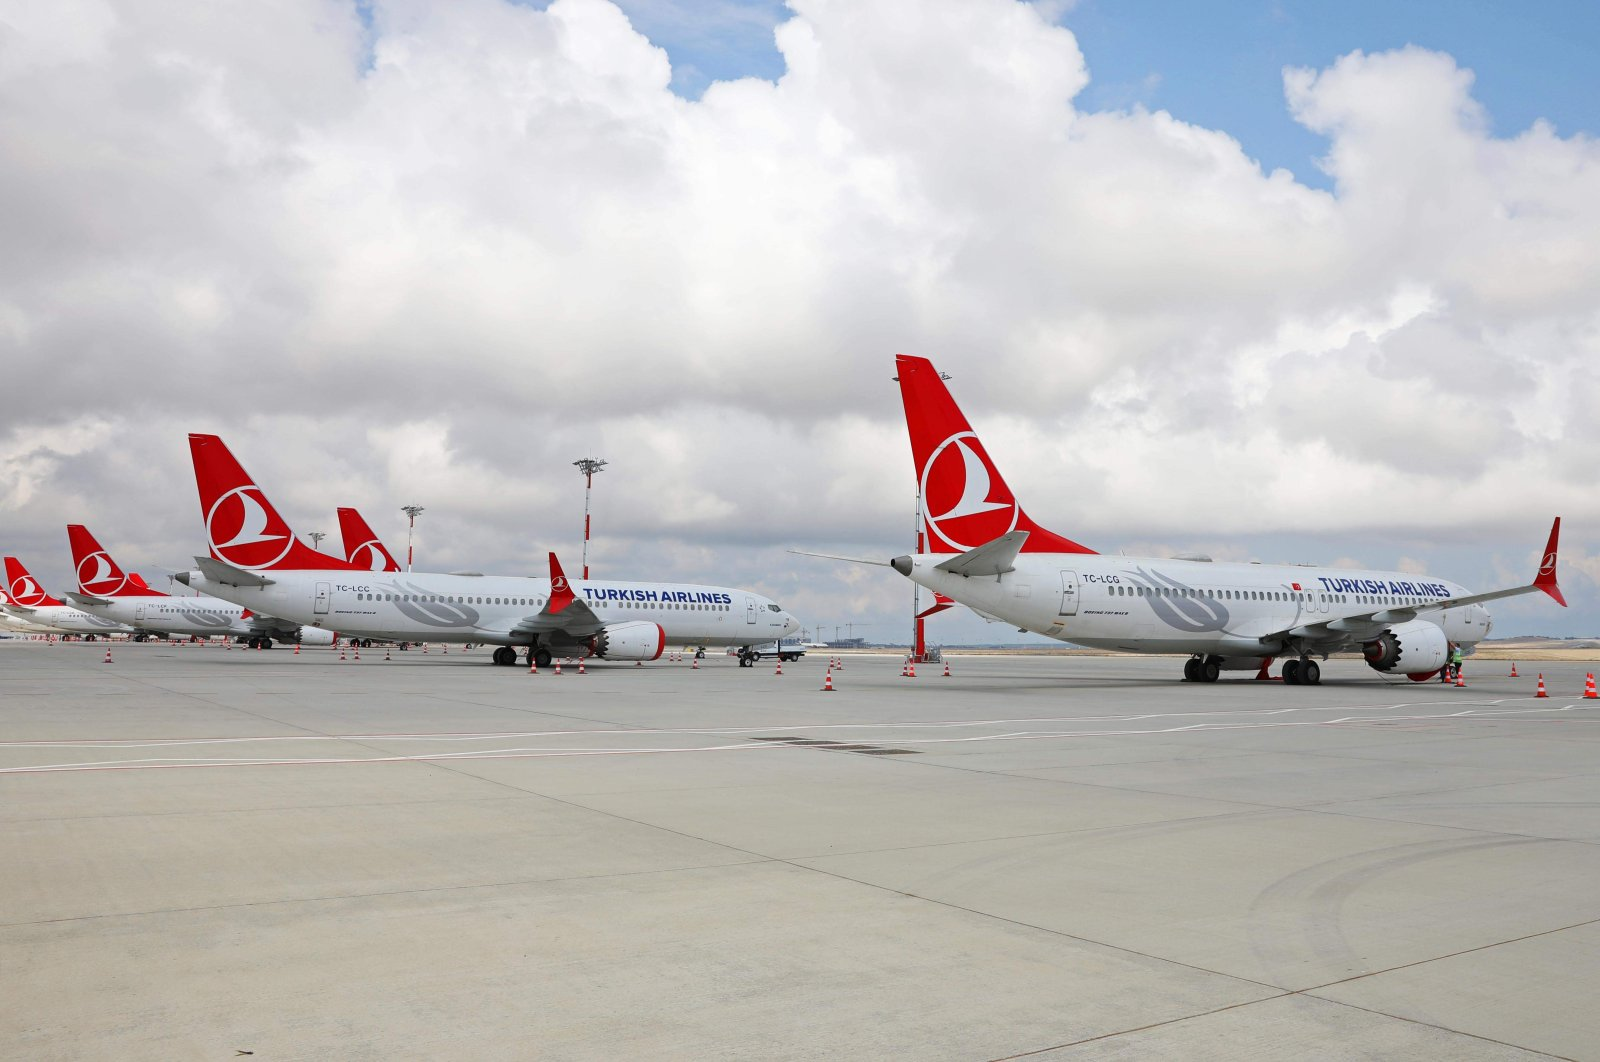 Turkish Airlines' Boeing 737-MAX airplanes sit parked at an airport in Istanbul, Turkey.